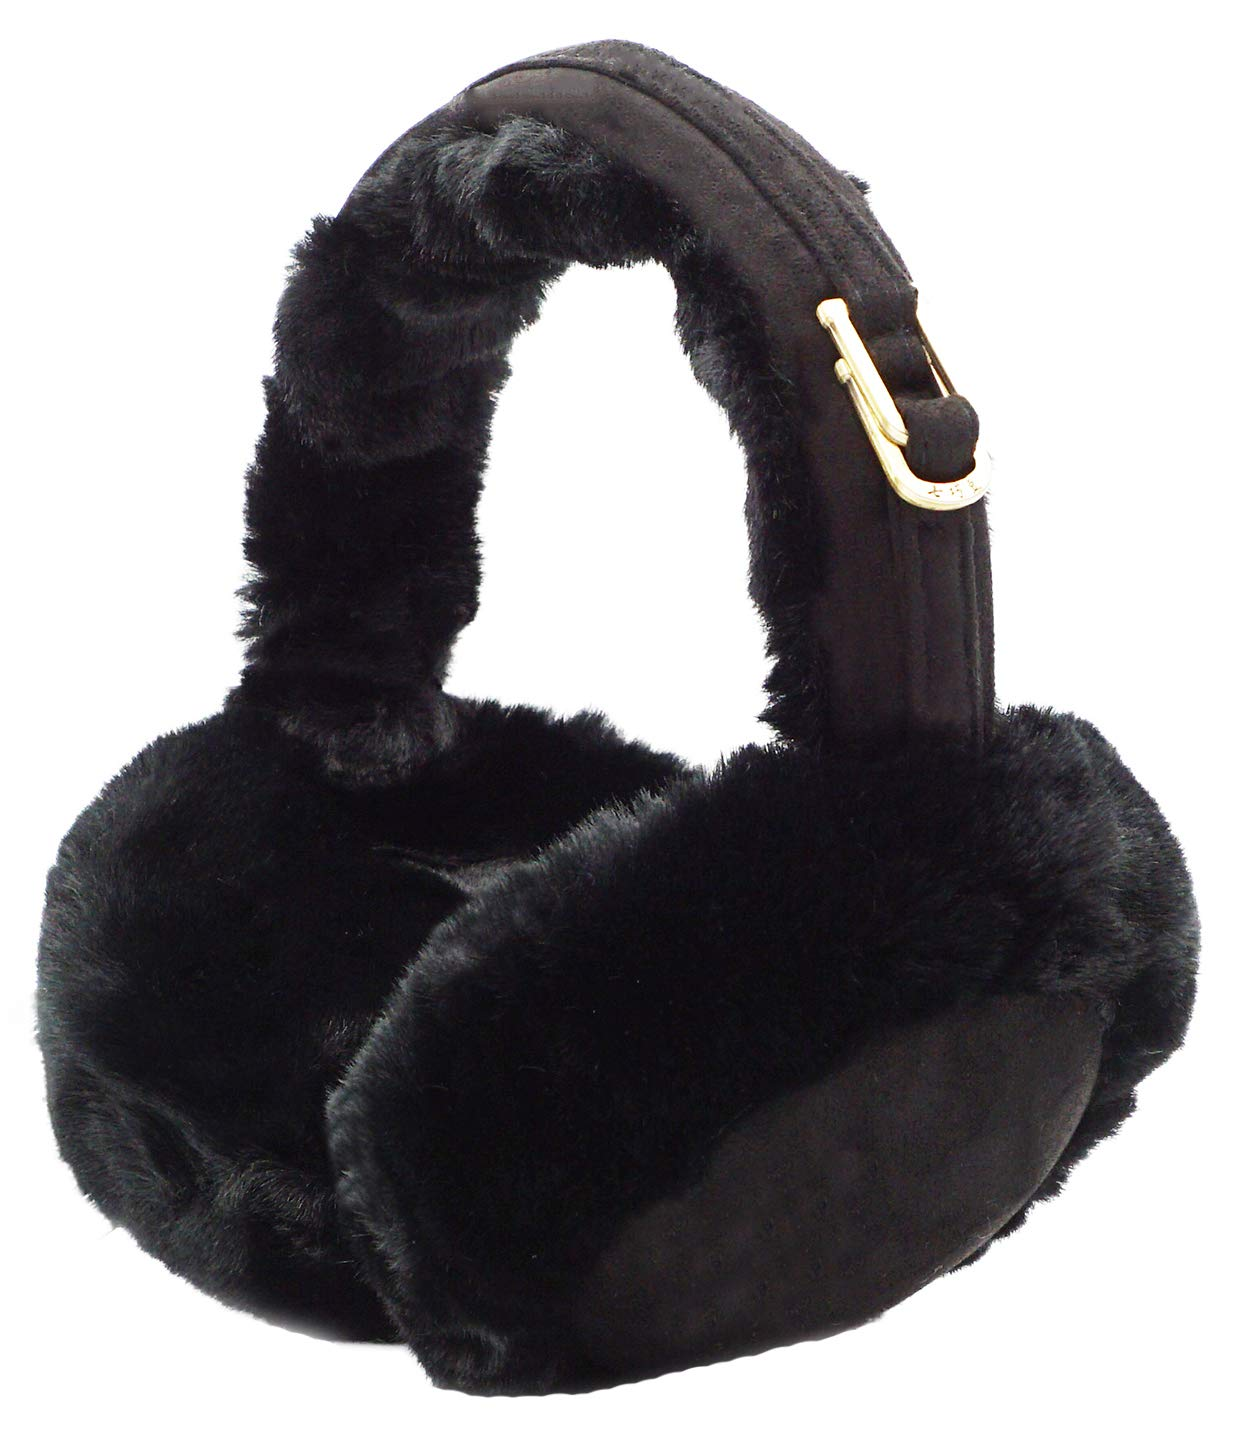 Men's Earmuffs Men's Accessories 2019 Winter Warm Earmuffs Knitted Children Ear Muffs For Boy Earmuffs For Girls Baby Gift Ear Warmers Chills And Pains